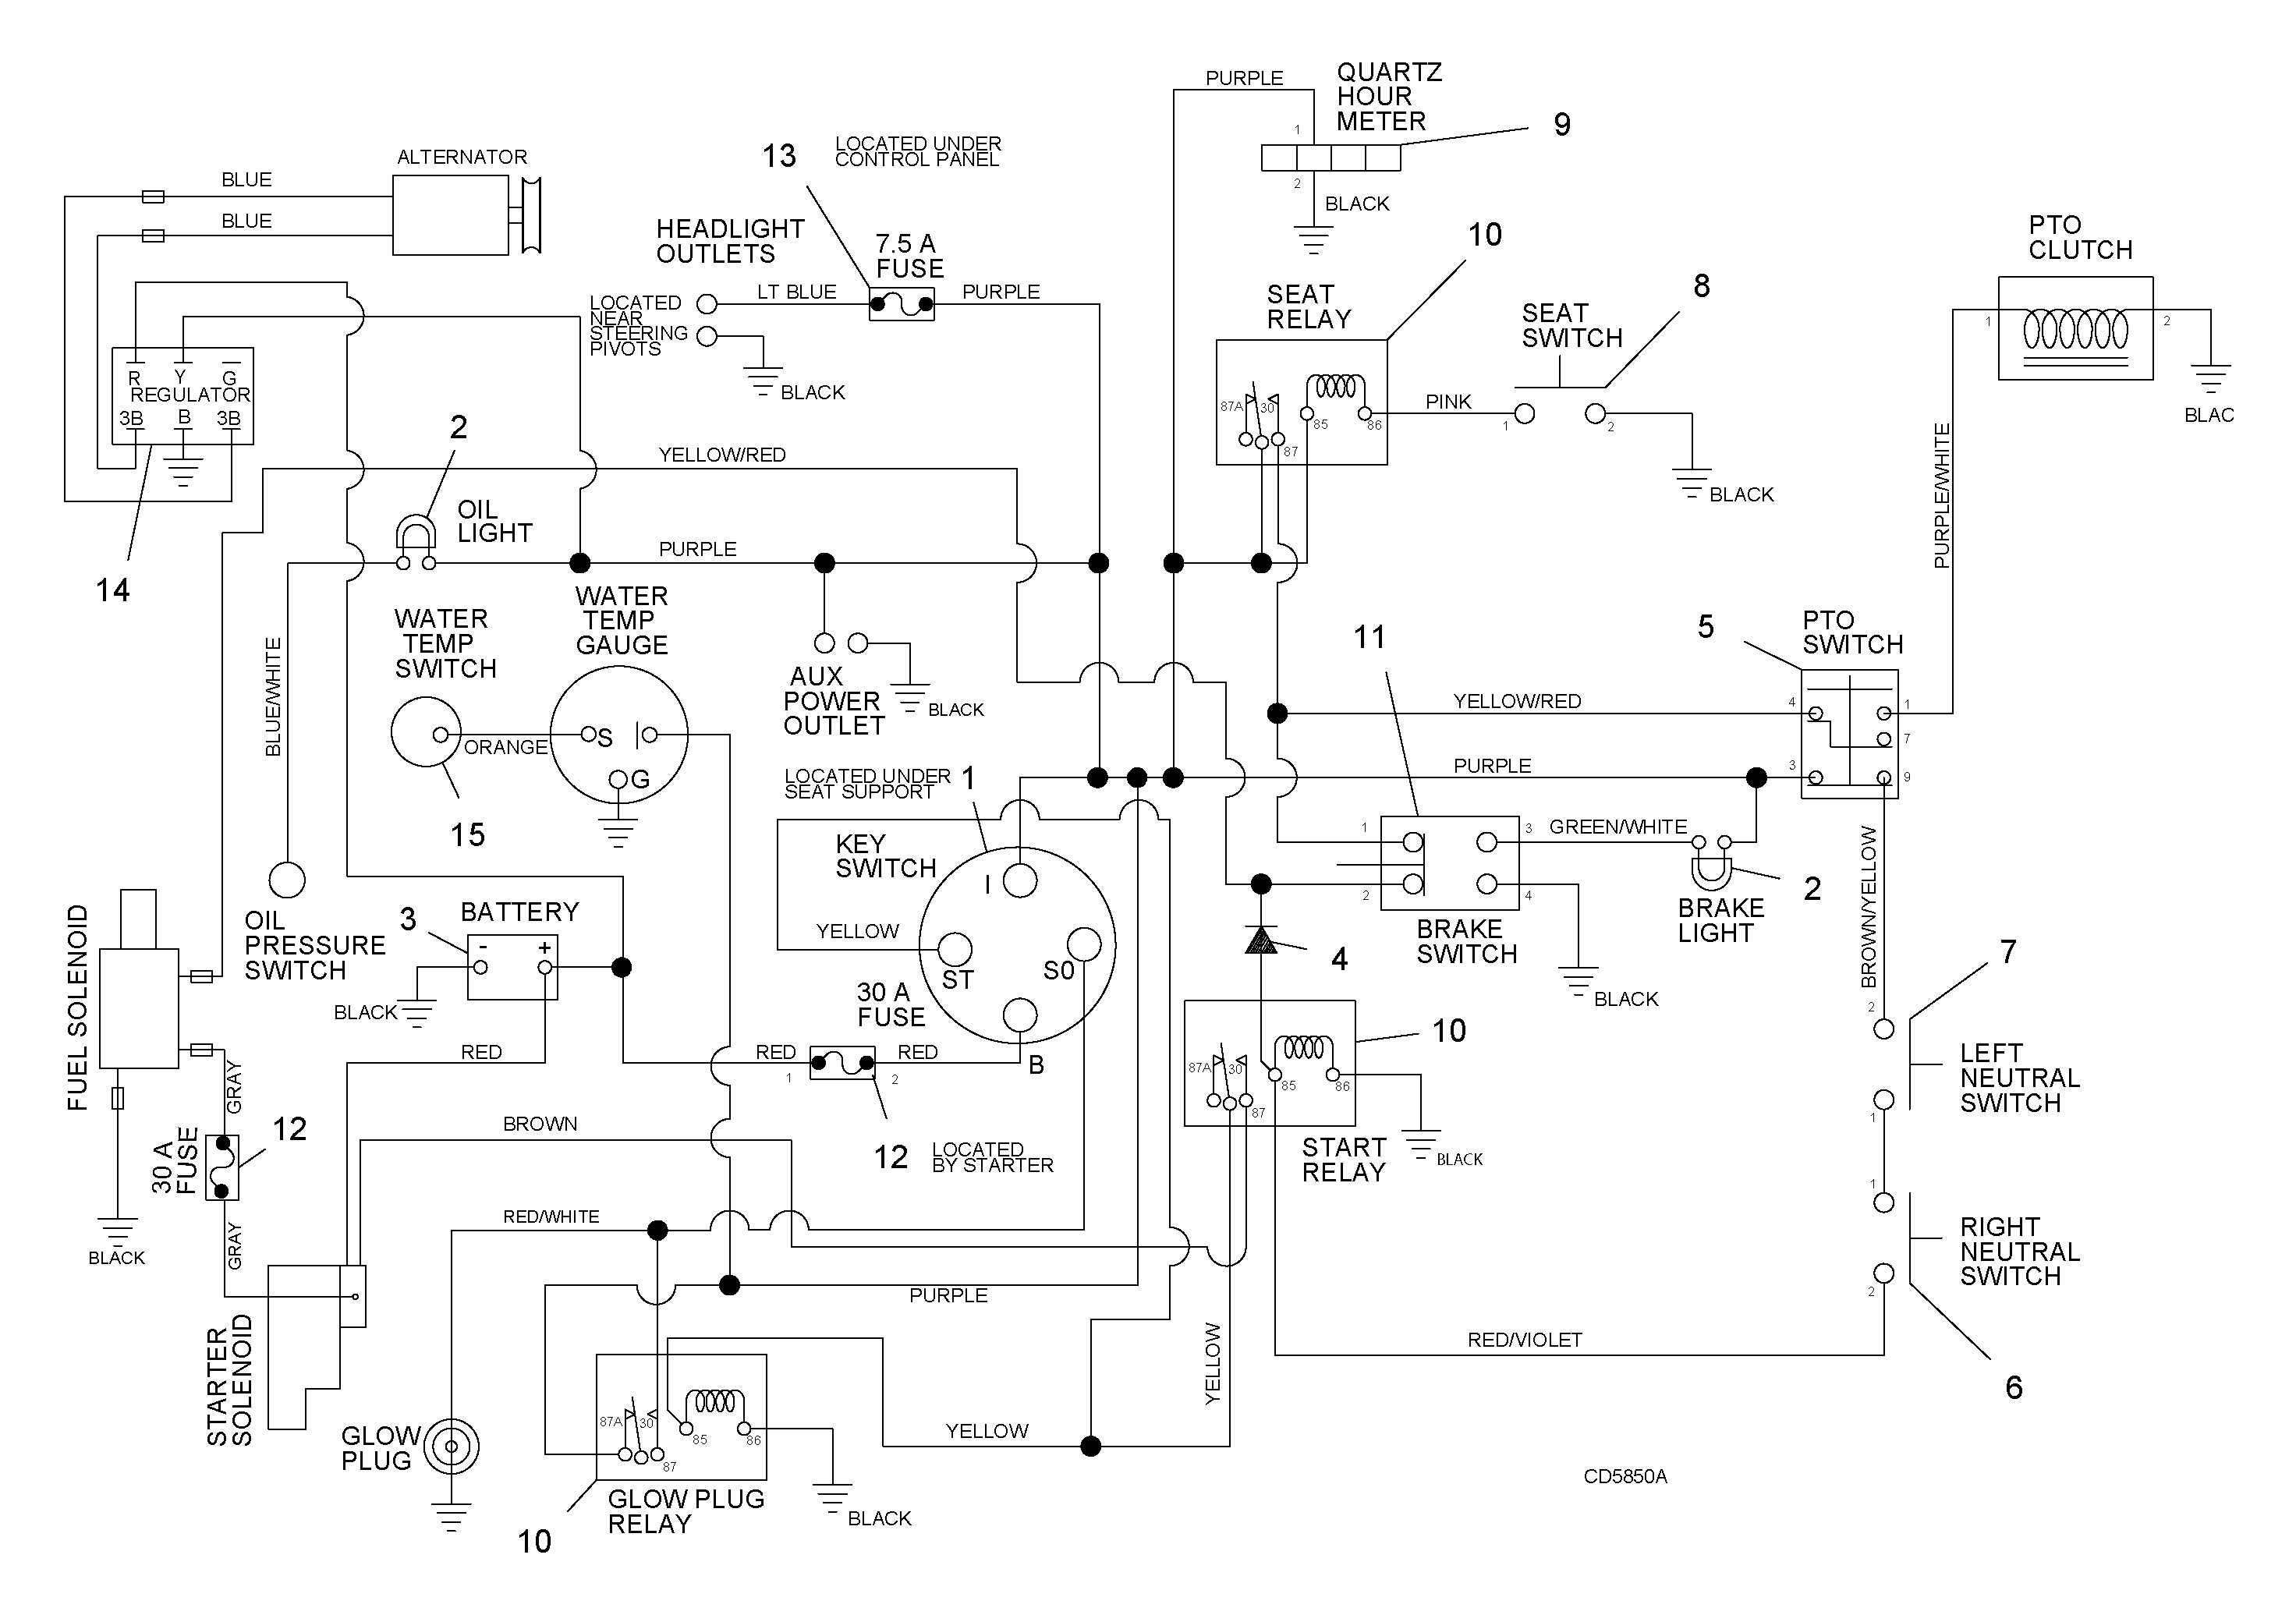 kubota wiring diagram pdf Collection-Kubota Generator Wiring Diagram Valid Kubota Wiring Diagram Pdf Fresh Sbc Wiring Diagram Blurts Wiring 18-n